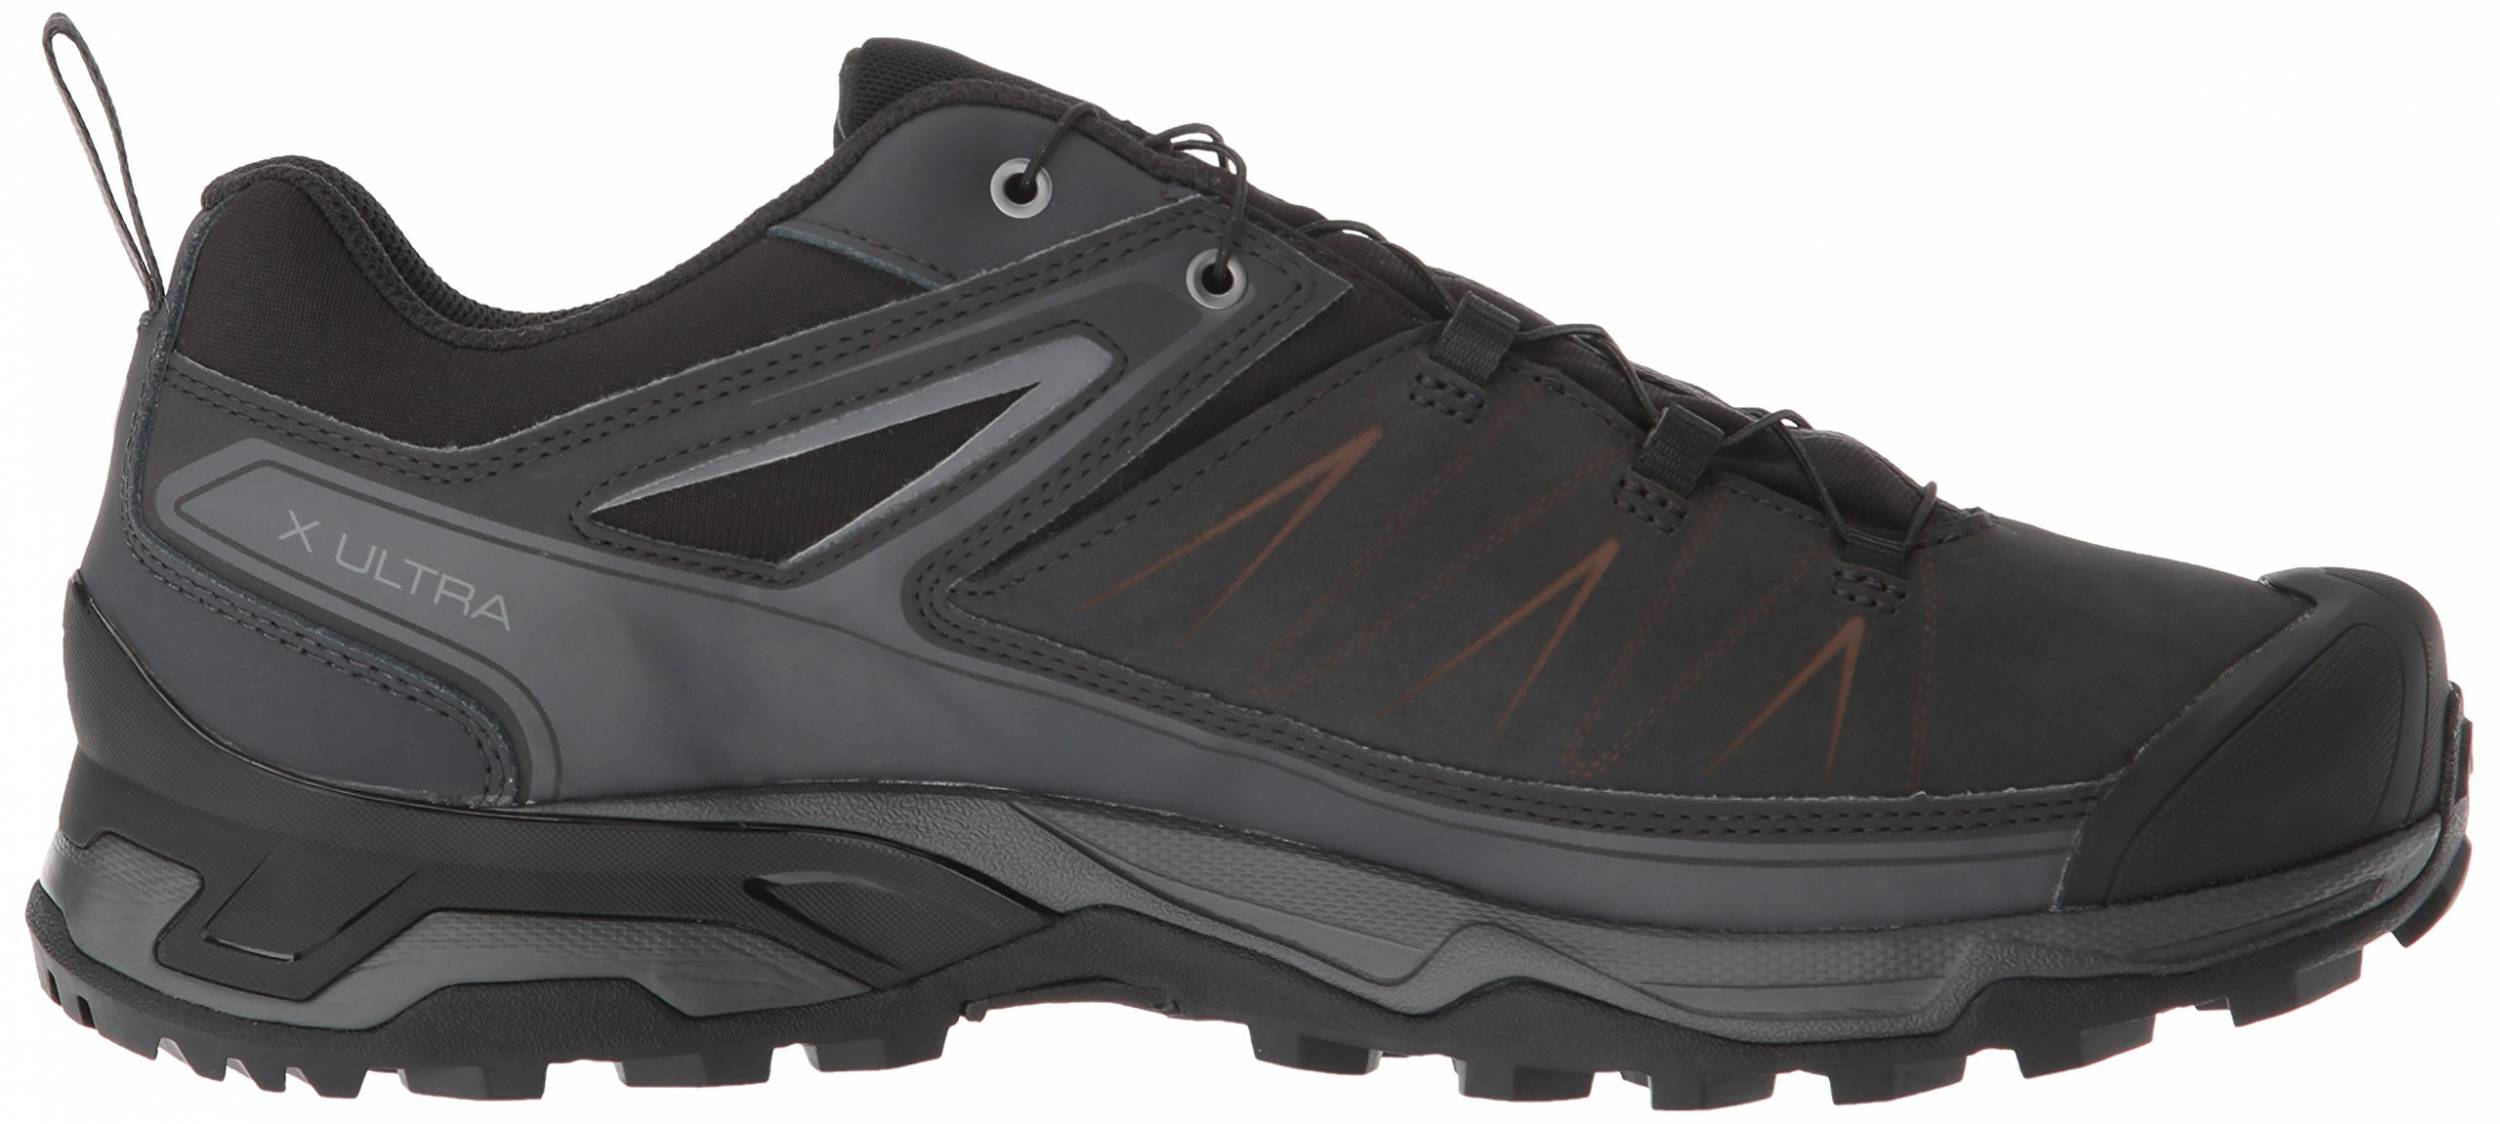 salomon men's outline low gtx hiking shoe magnet xr